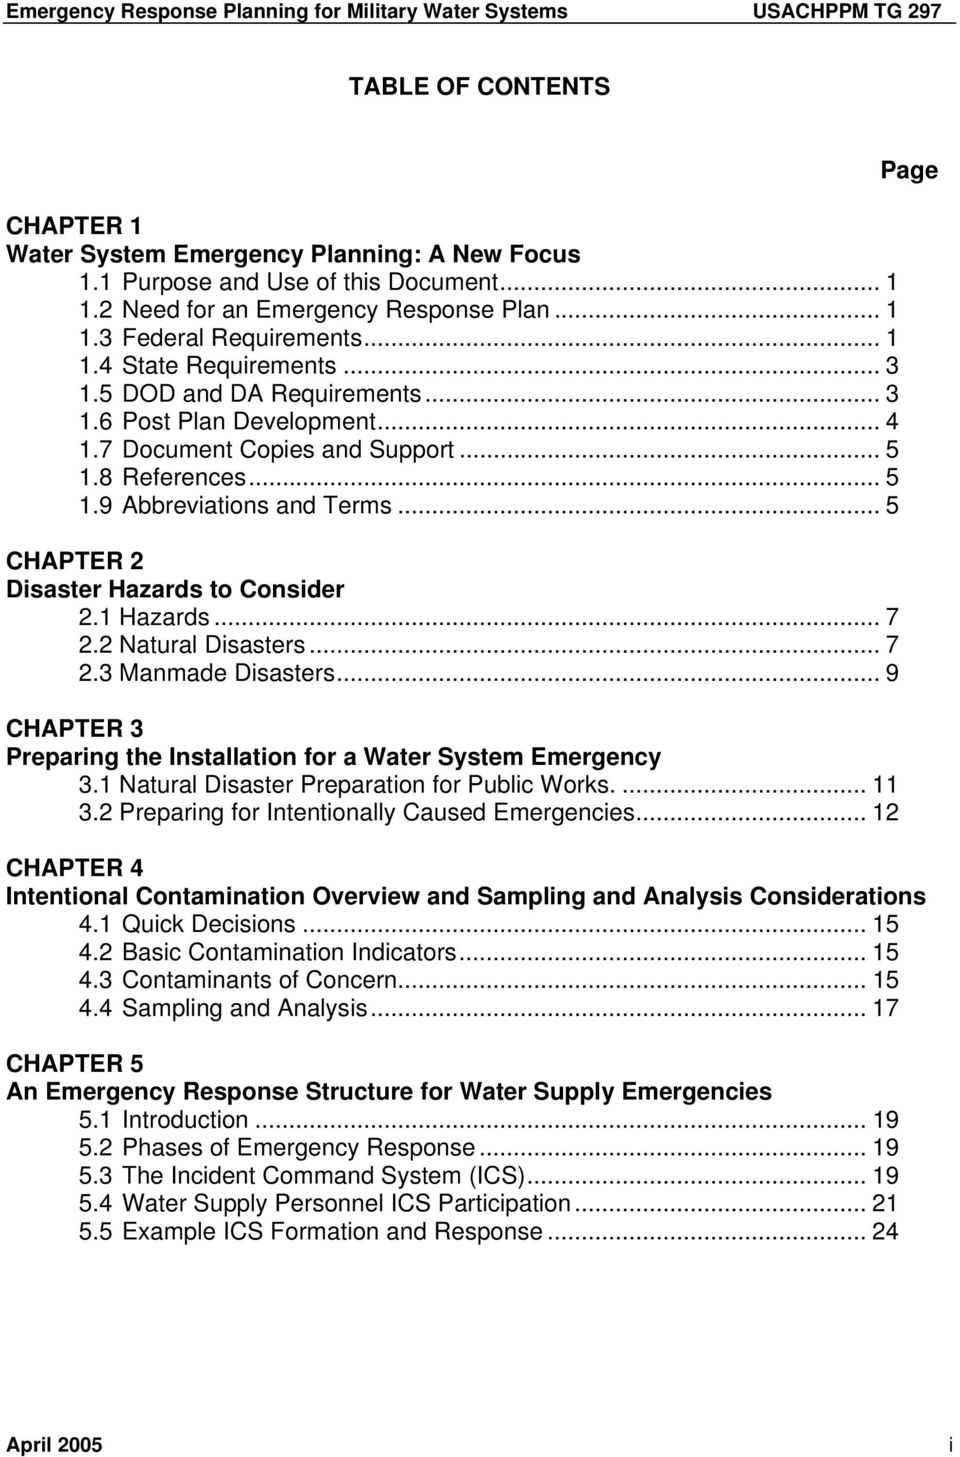 1 Hazards... 7 2.2 Natural Disasters... 7 2.3 Manmade Disasters... 9 CHAPTER 3 Preparing the Installation for a Water System Emergency 3.1 Natural Disaster Preparation for Public Works.... 11 3.